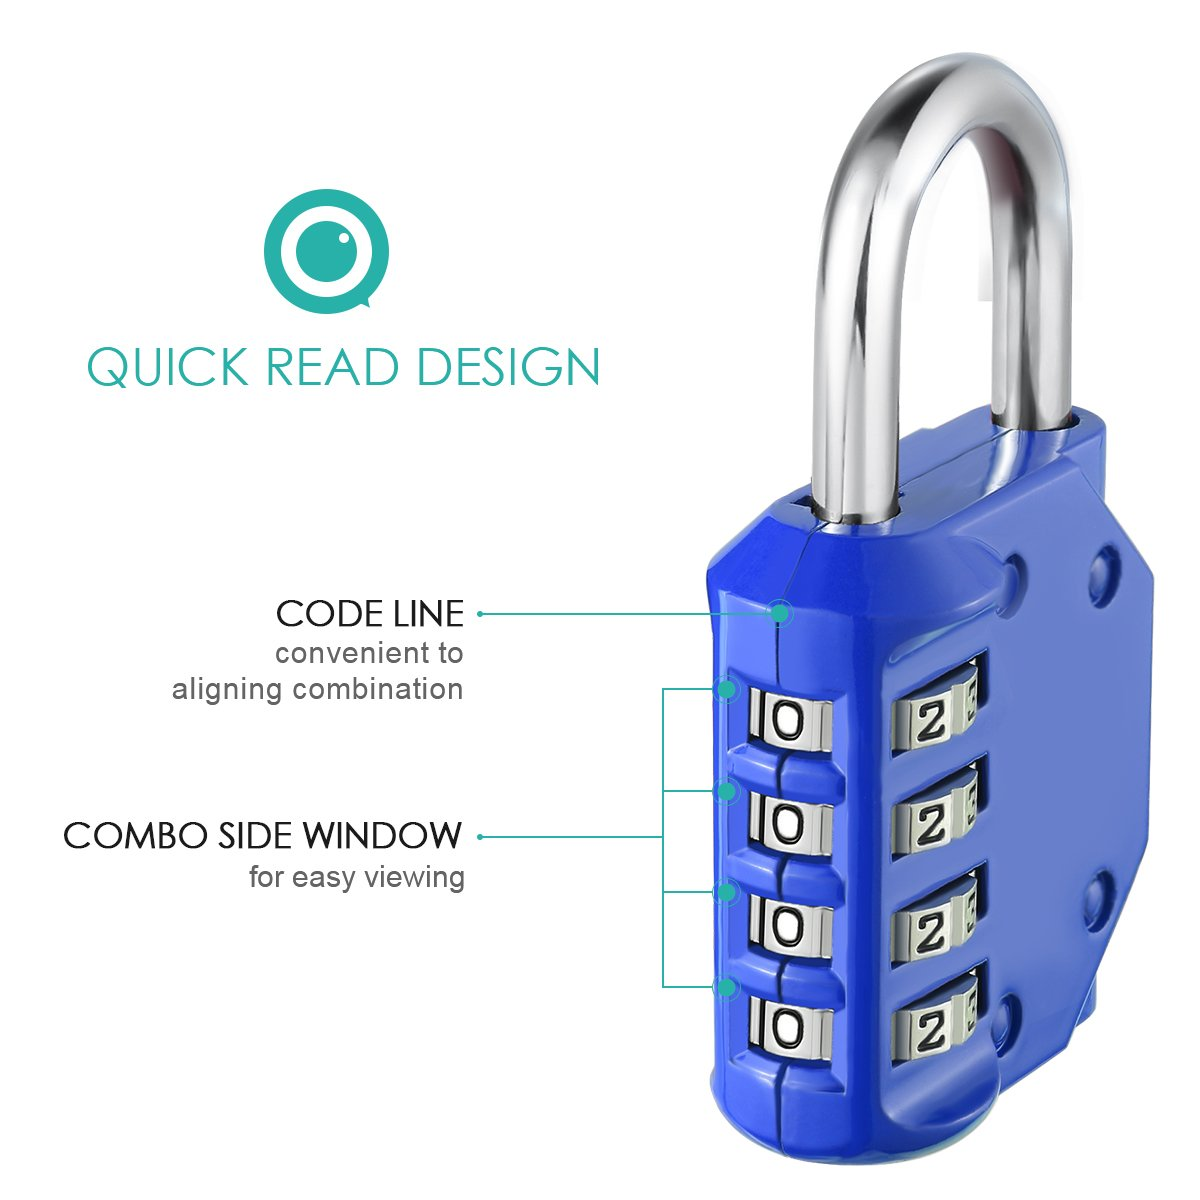 ORIA Combination Lock, 4 Digit Combination Padlock, Metal and Plated Steel Material for School, Employee, Gym or Sports Locker, Case, Toolbox, Fence, Hasp Cabinet and Storage, Pack of 2 (Blue) by ORIA (Image #4)